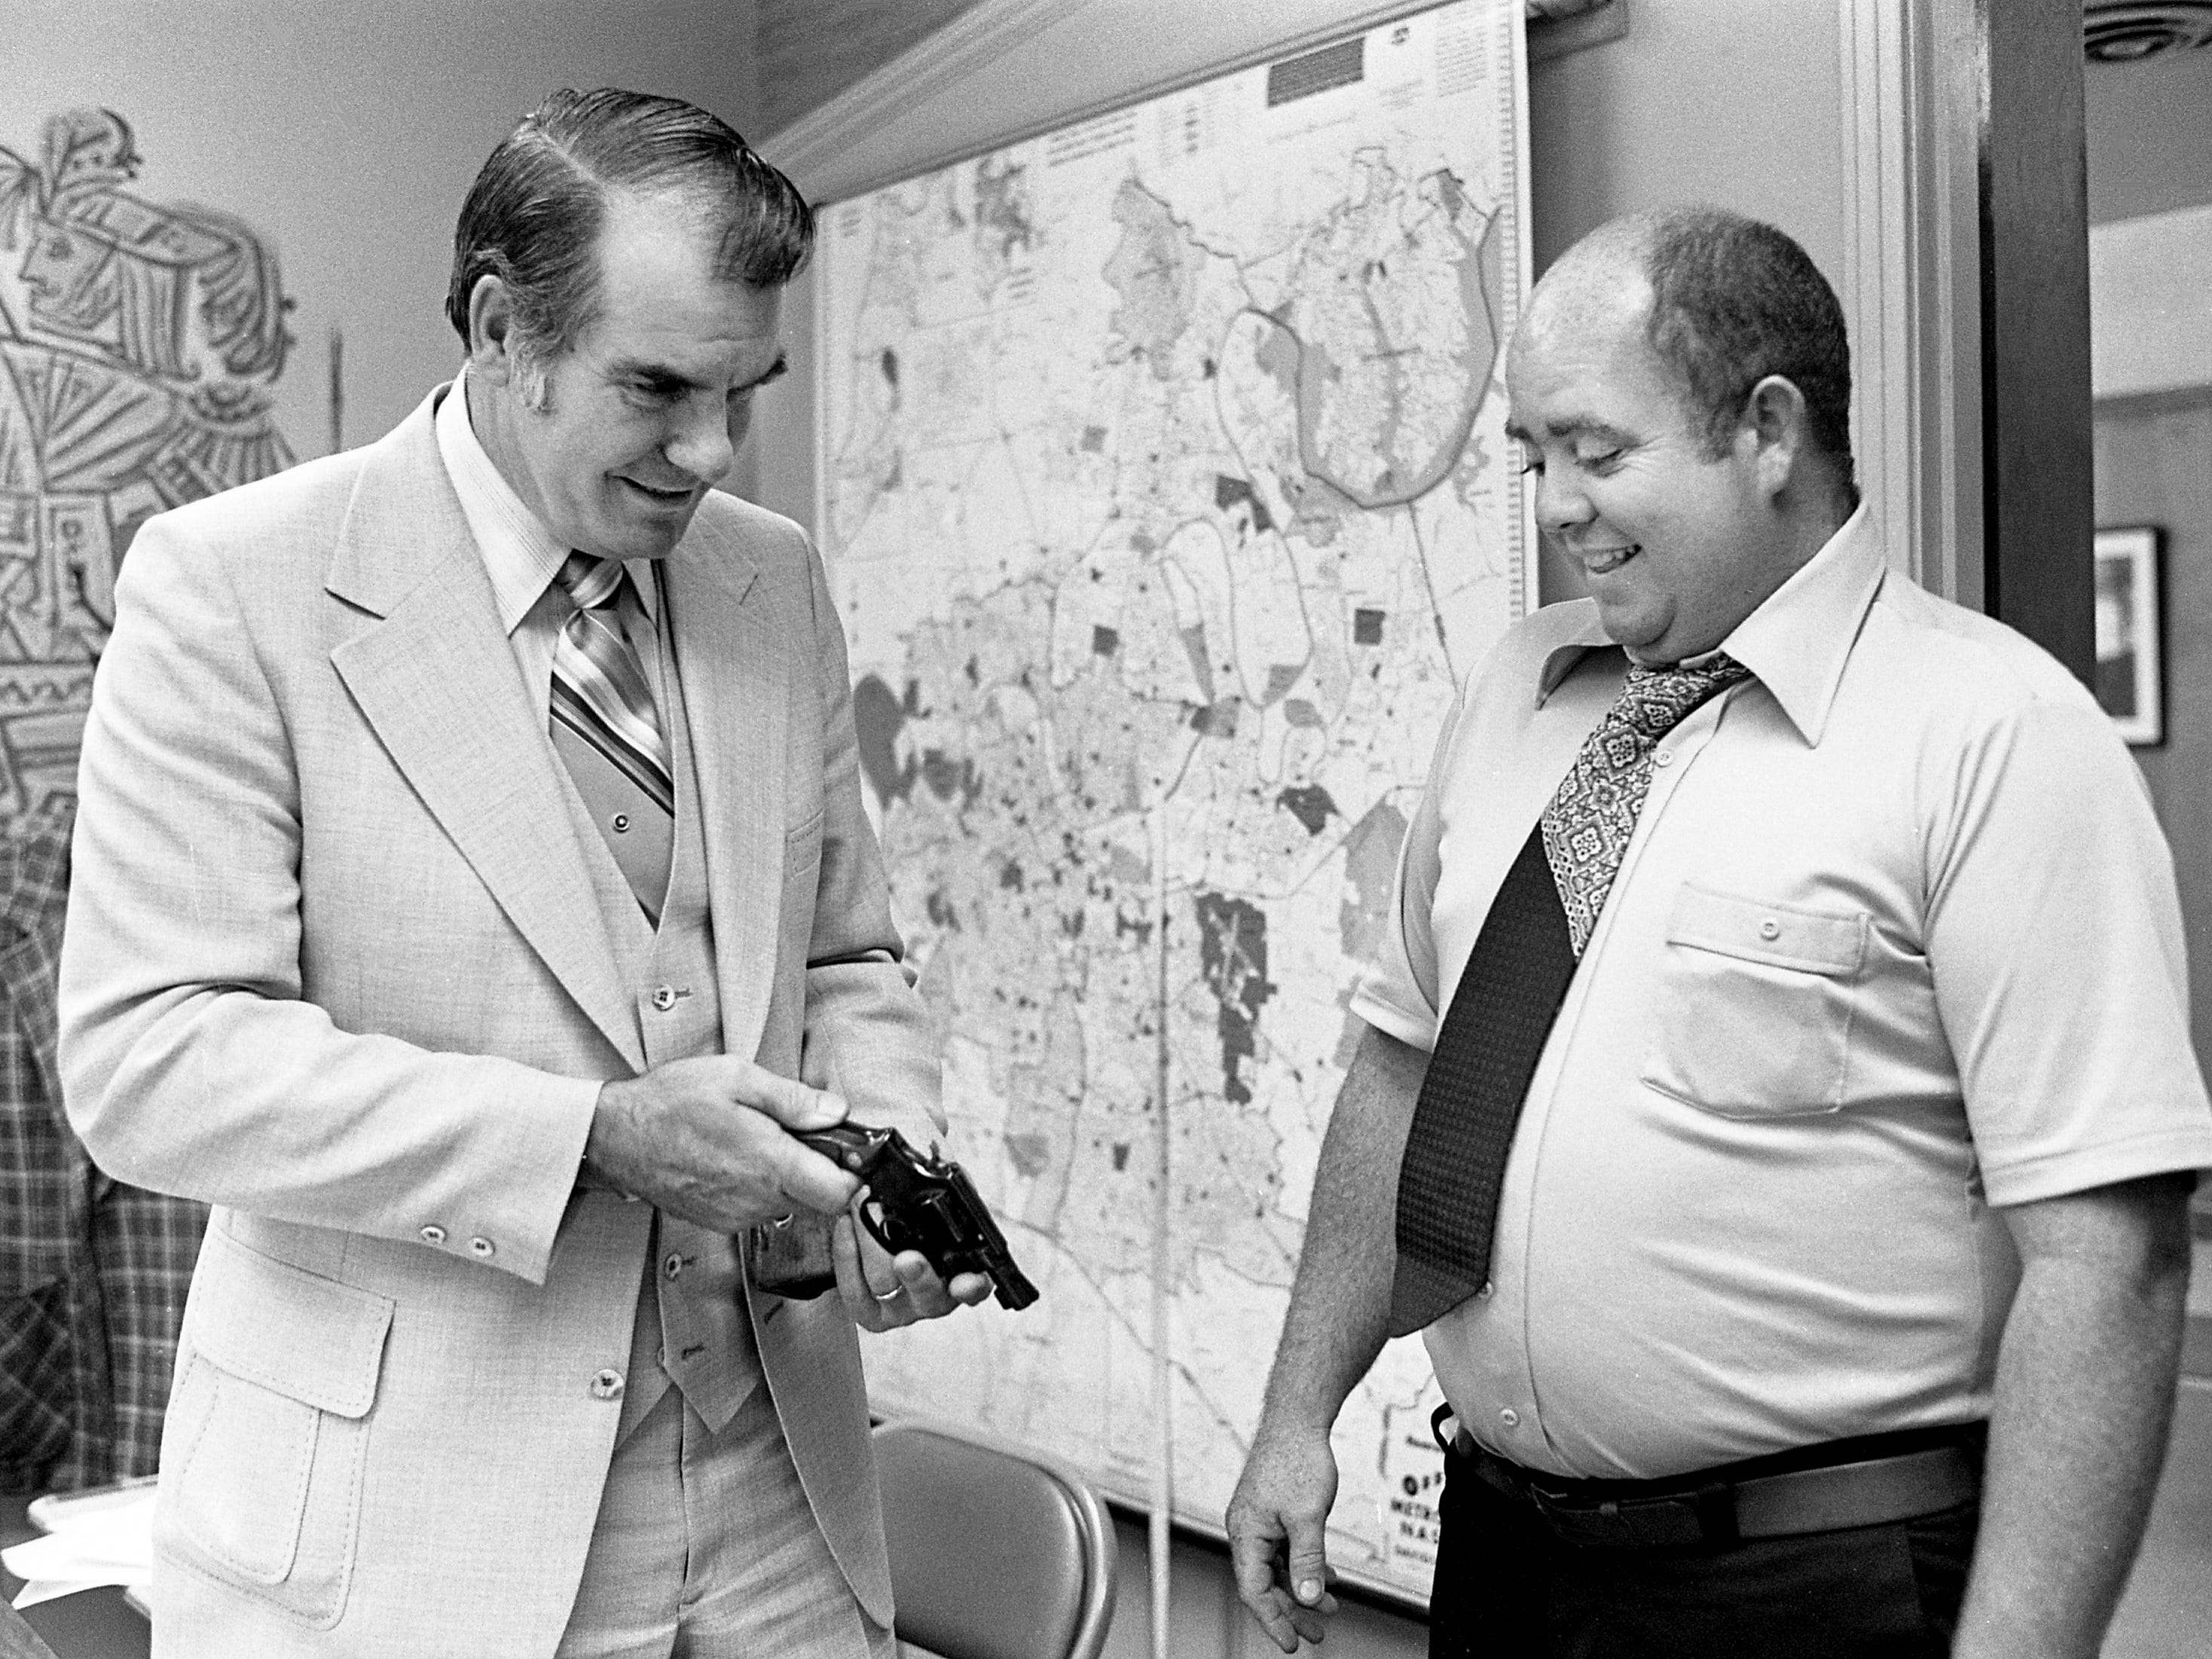 Metro Police Chief Joe Casey, left, is reunited May 24, 1977, with his service revolver that was stolen along with his car more than a year ago. Tennessean reporter Jerry Thompson, right, was given the pistol by a new source who asked that the pistol be returned to the chief.